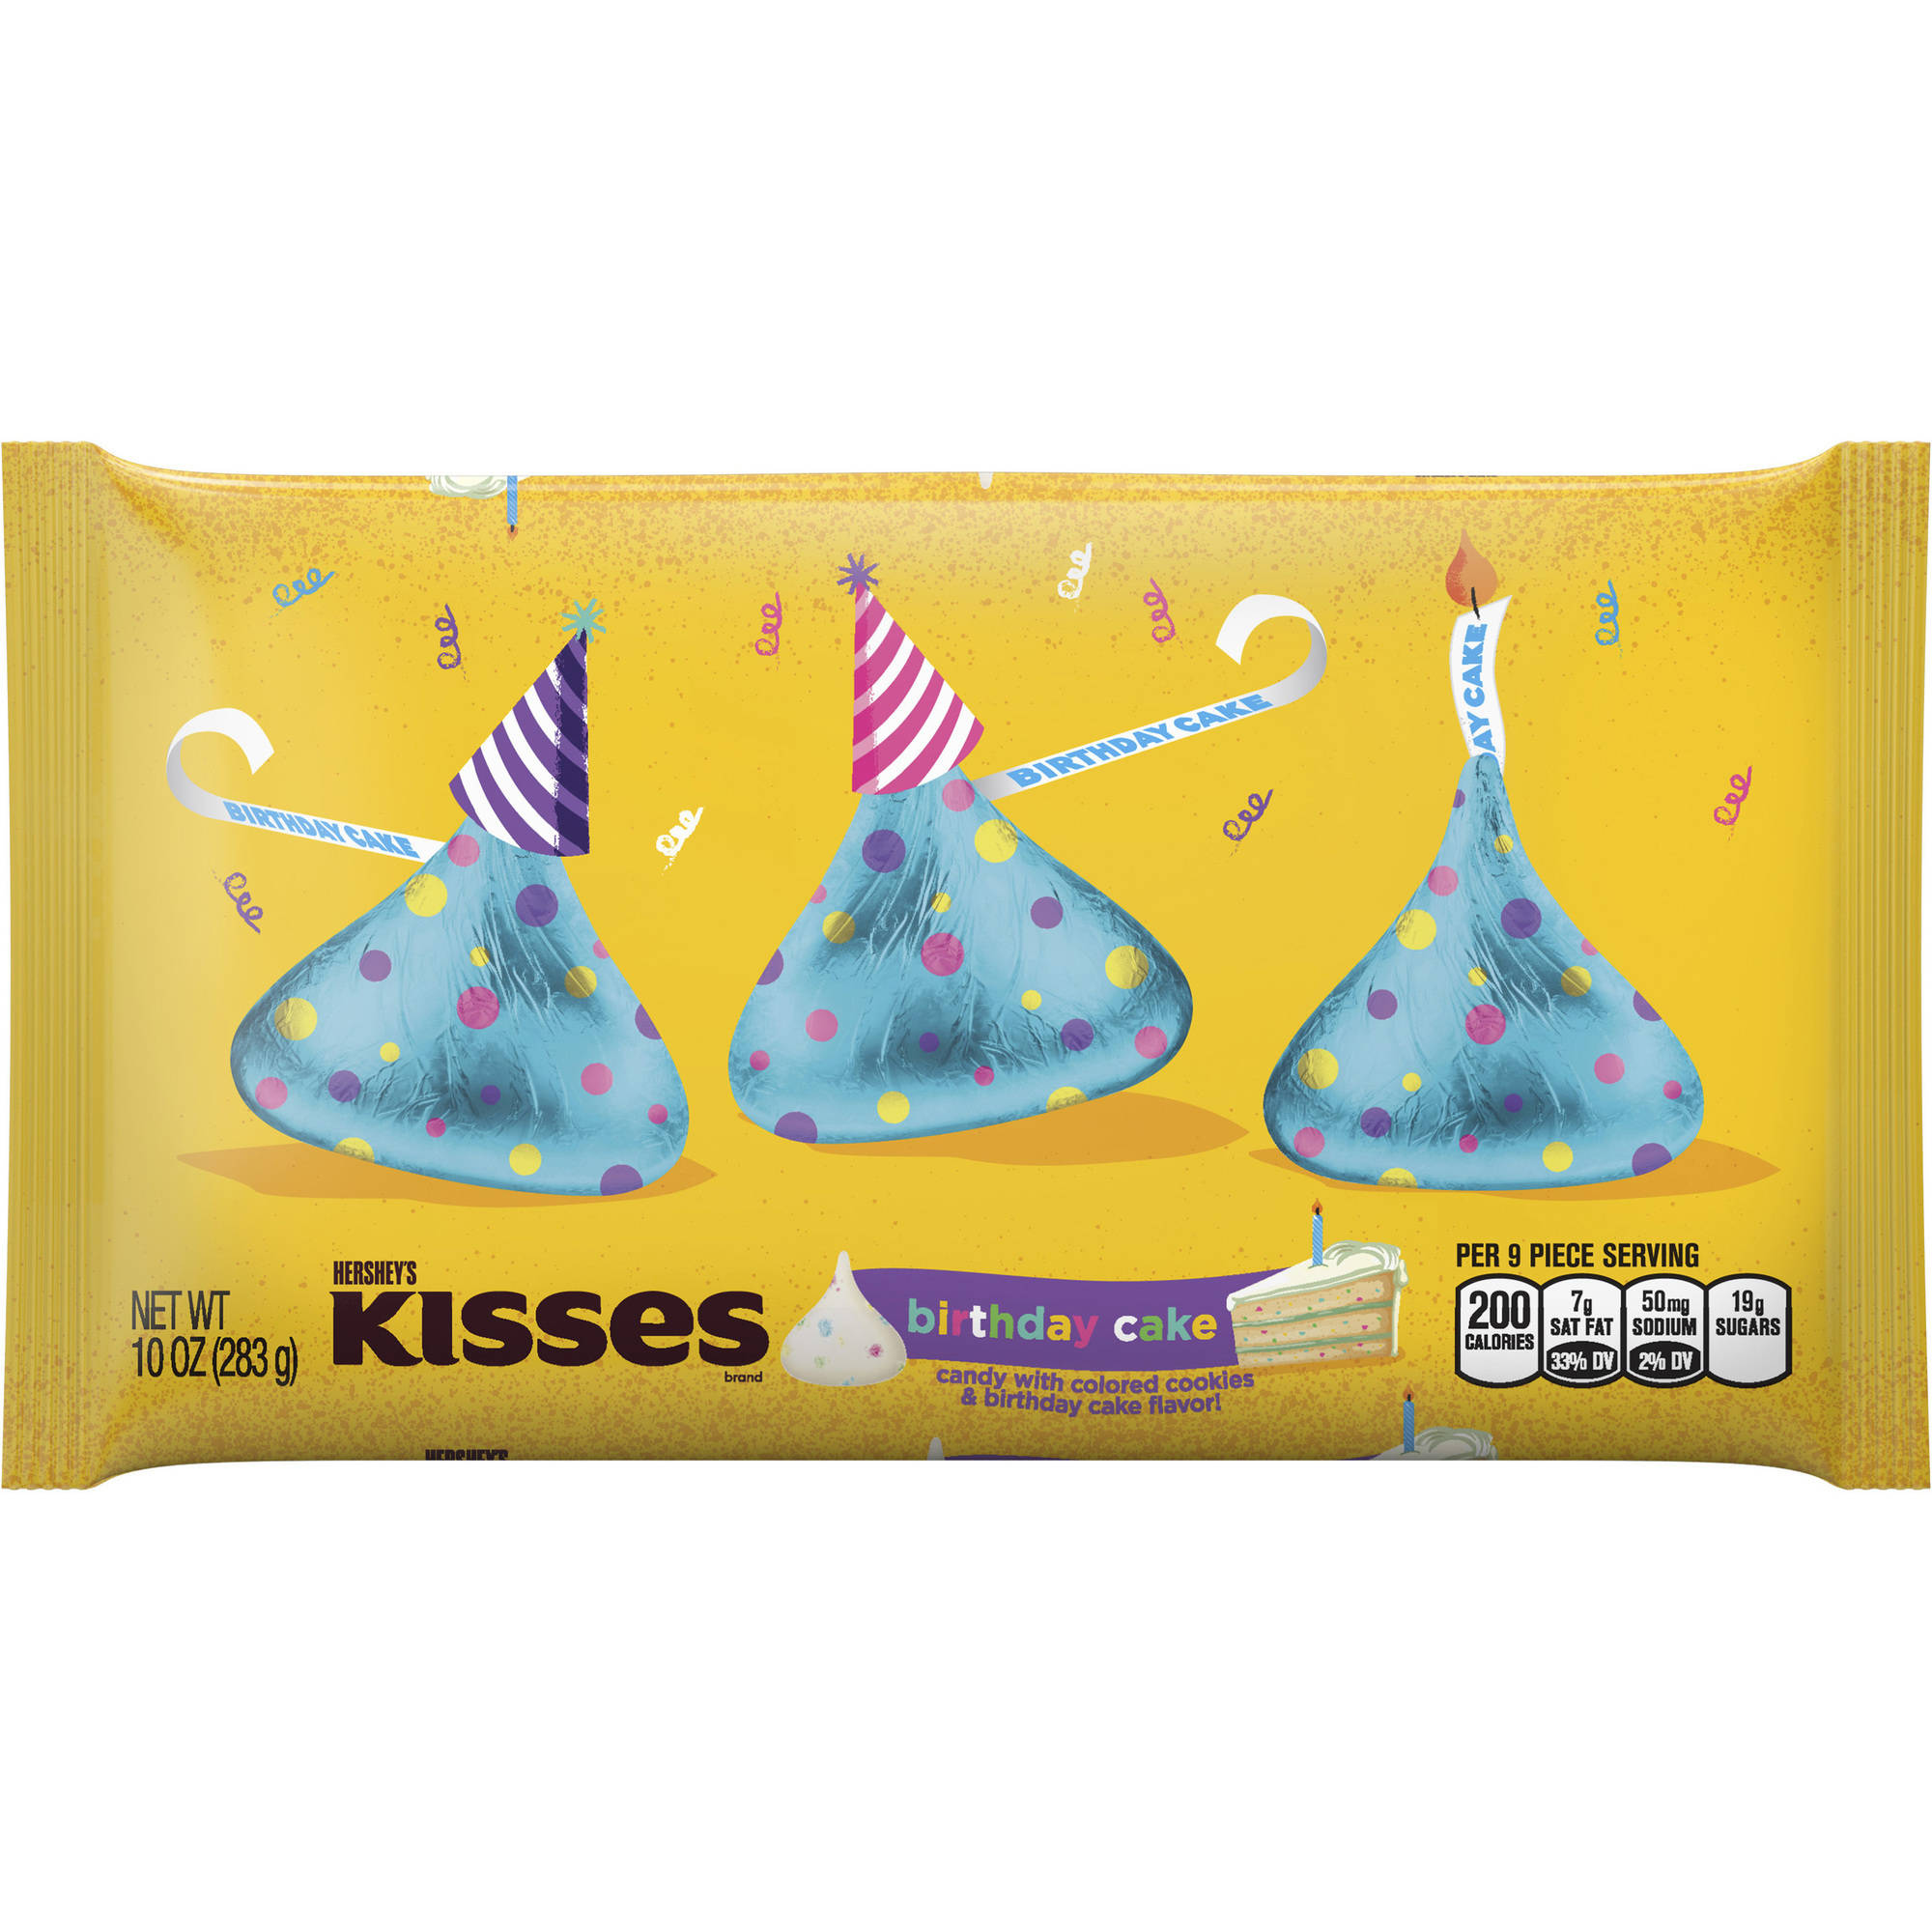 KISSES Birthday Cake Flavored Candies, 10 Ounces